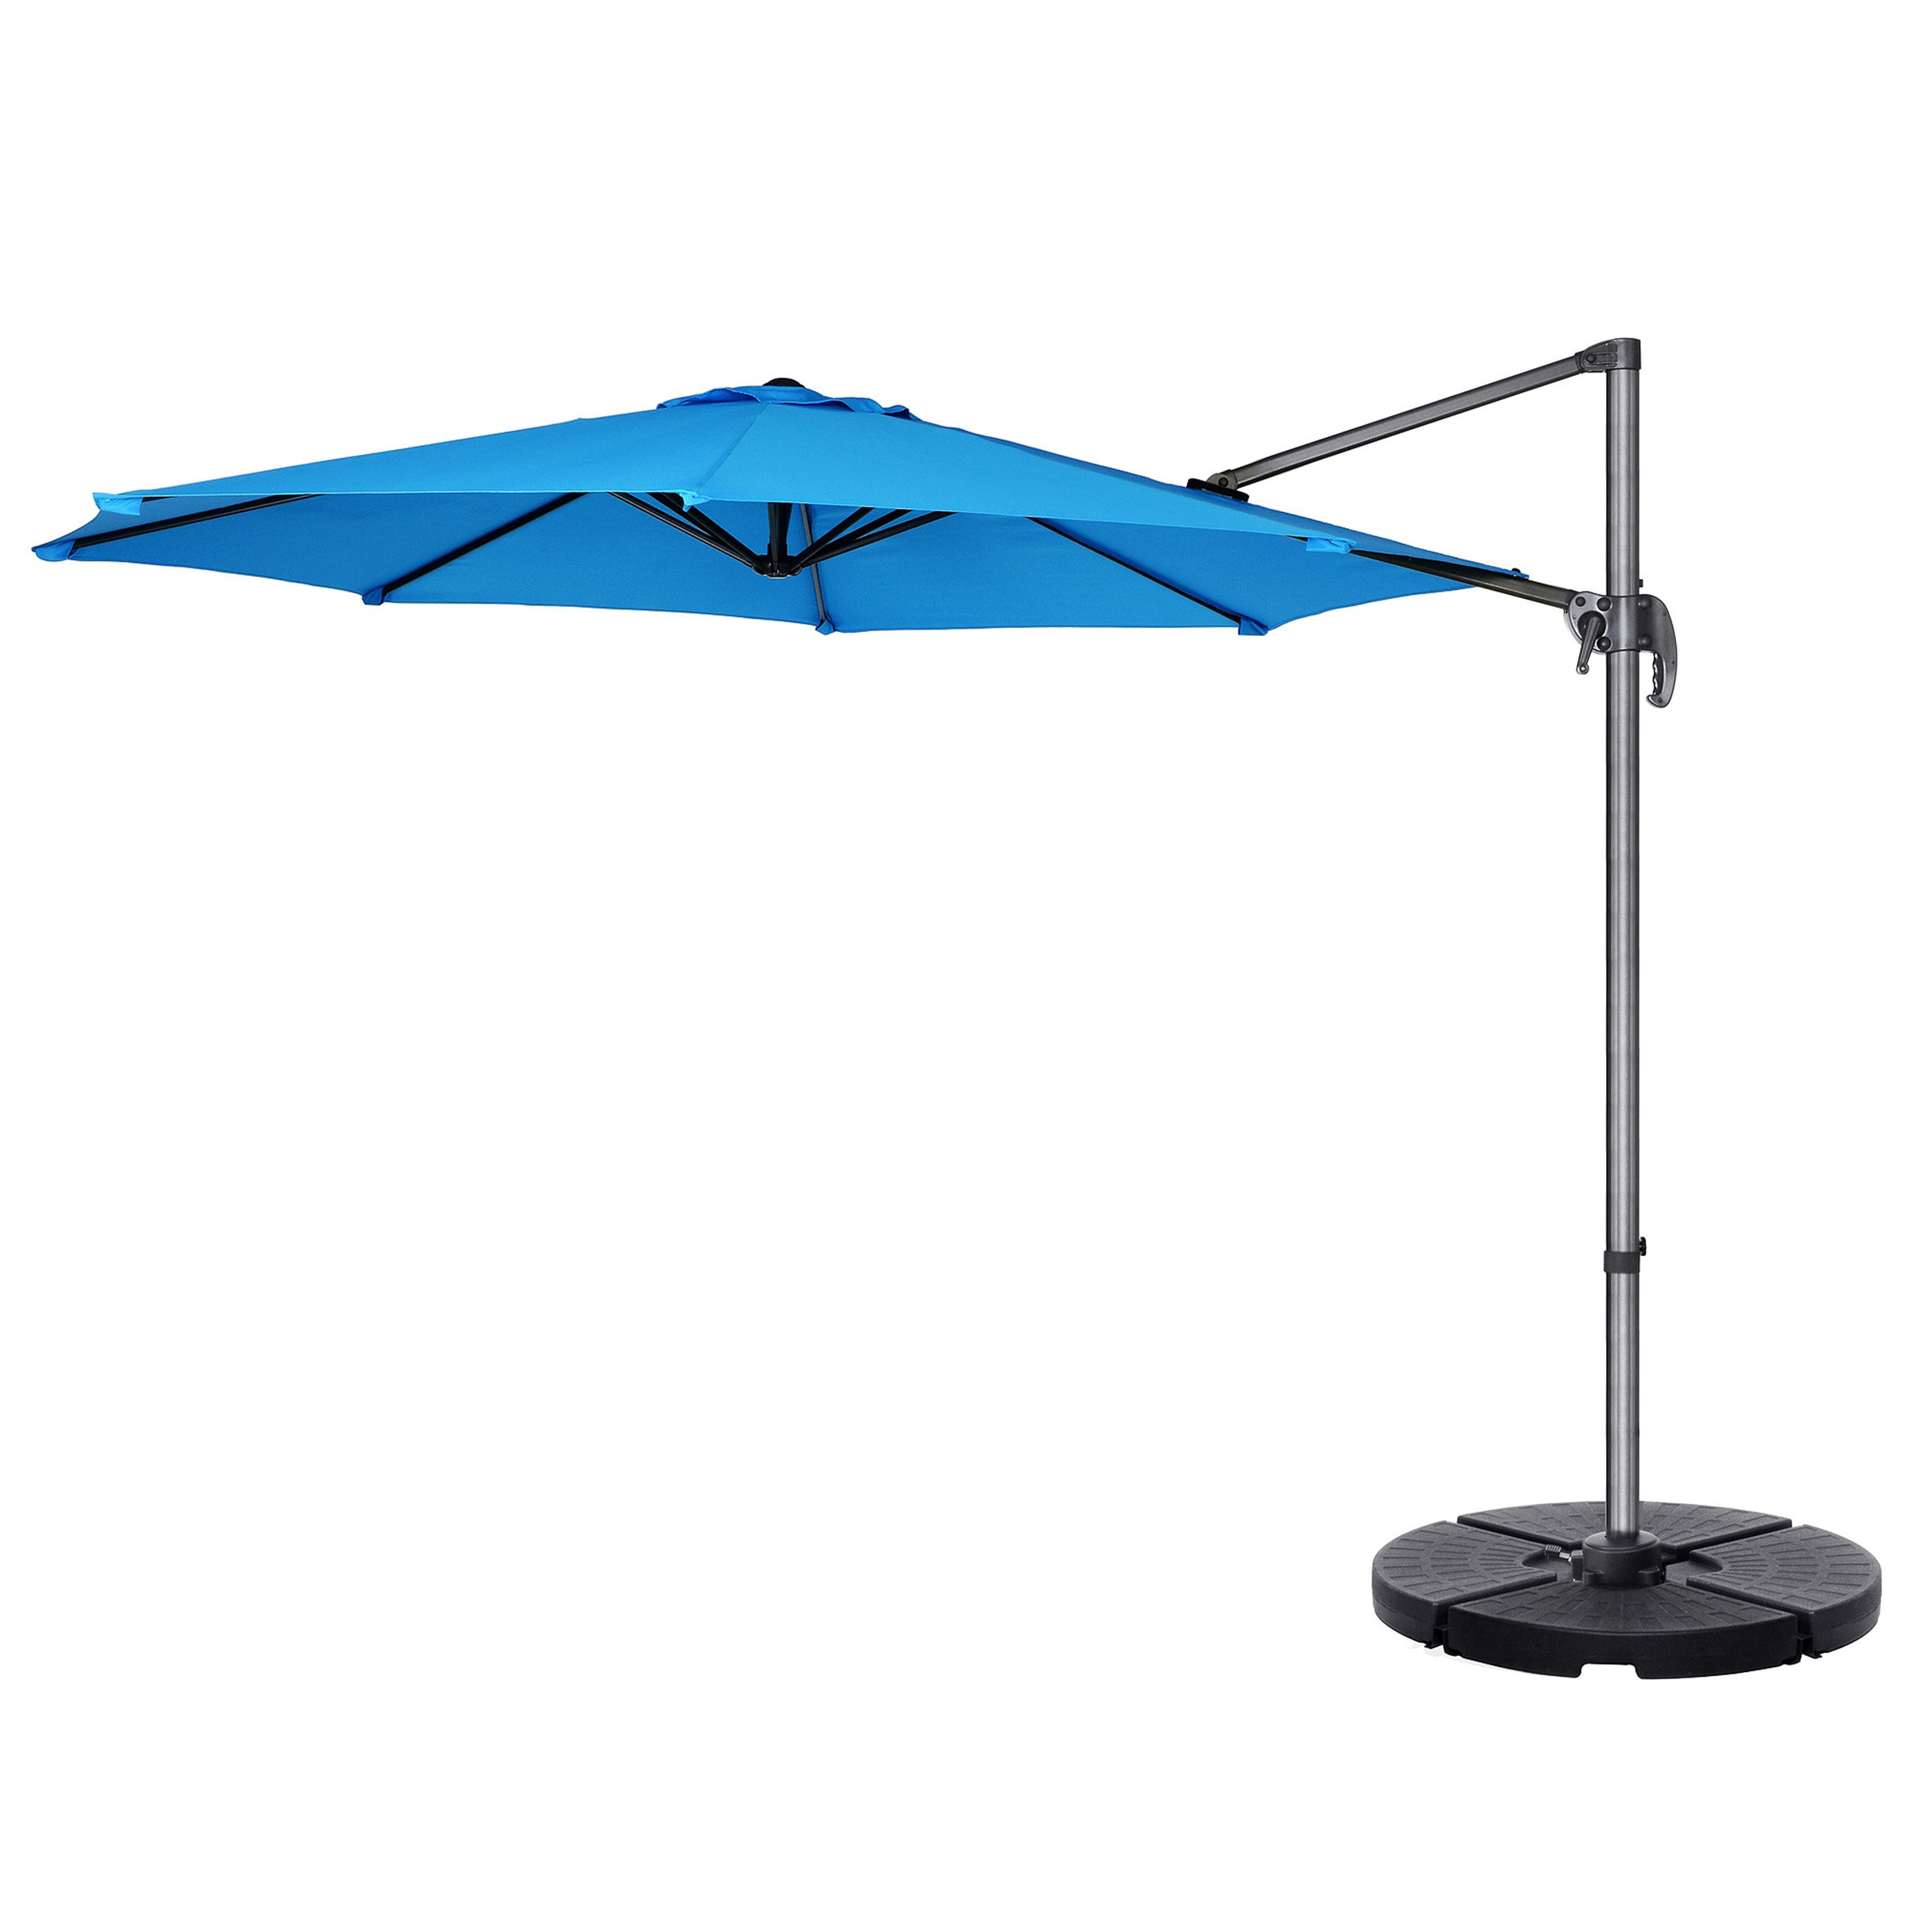 Well Liked Cockermouth Rotating 10' Cantilever Umbrella Intended For Trotman Cantilever Umbrellas (View 20 of 20)